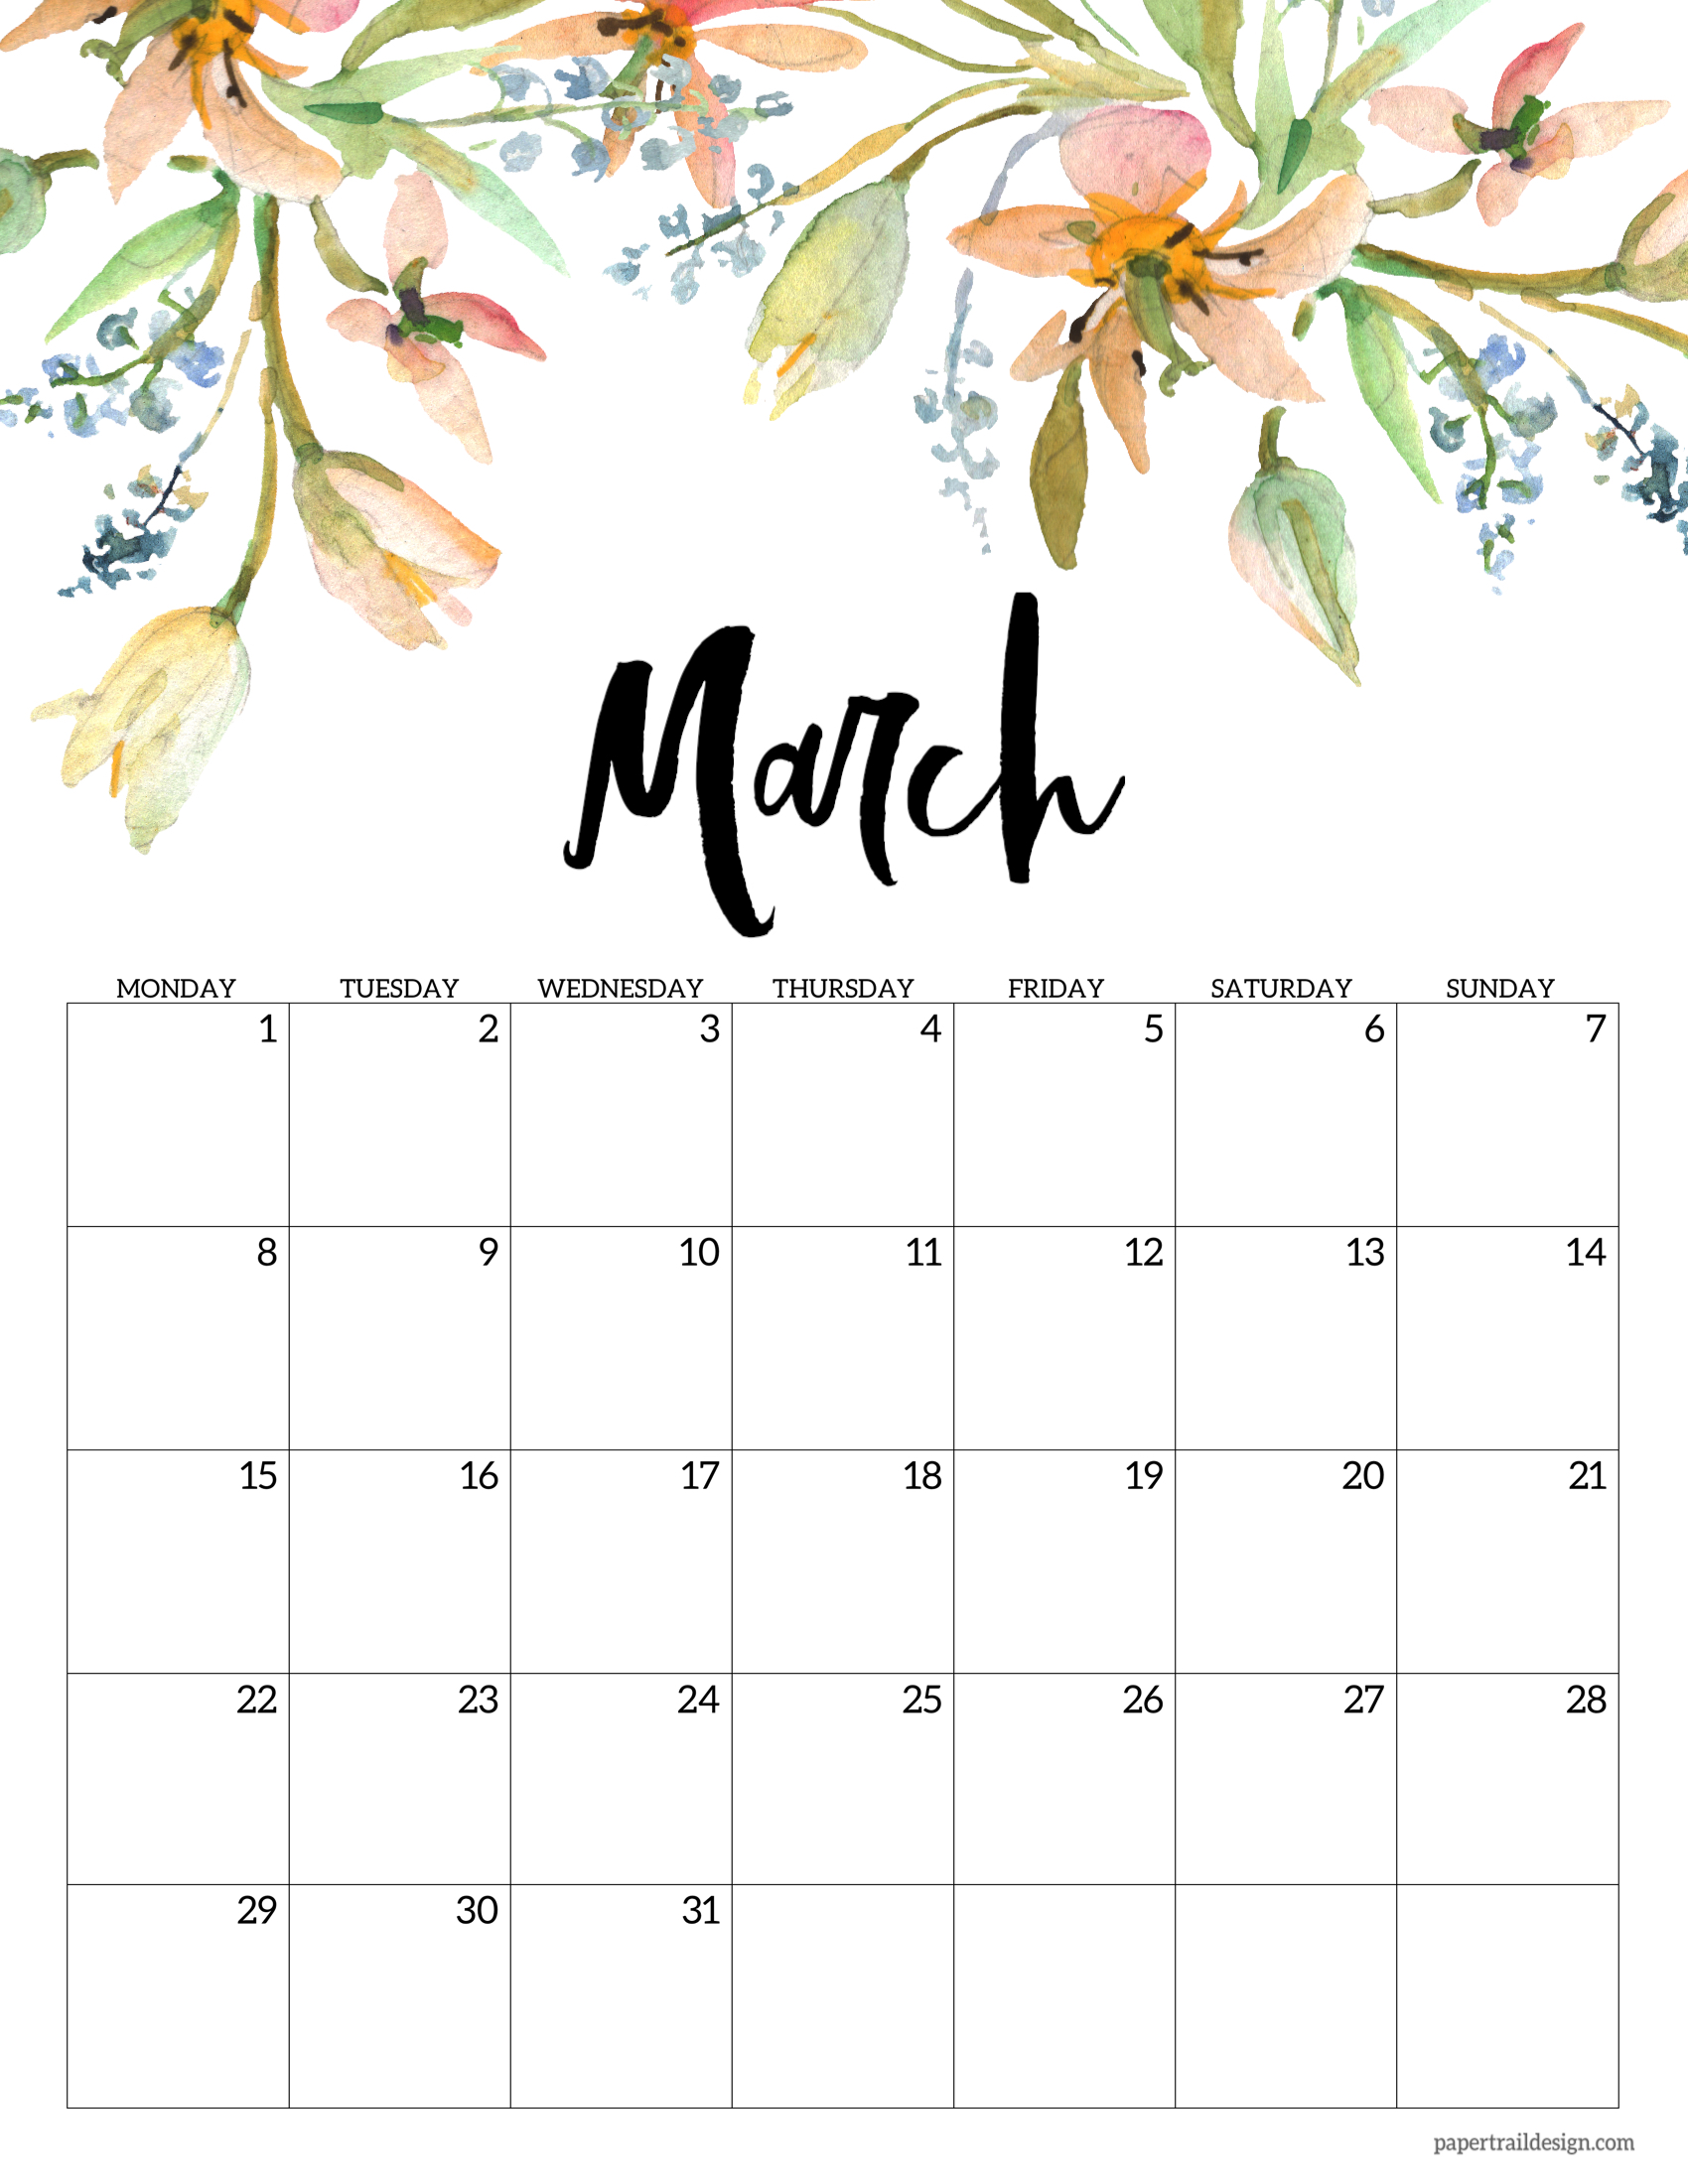 Download 2021 and 2022 calendars. Free Printable 2021 Floral Calendar - Monday Start   Paper ...